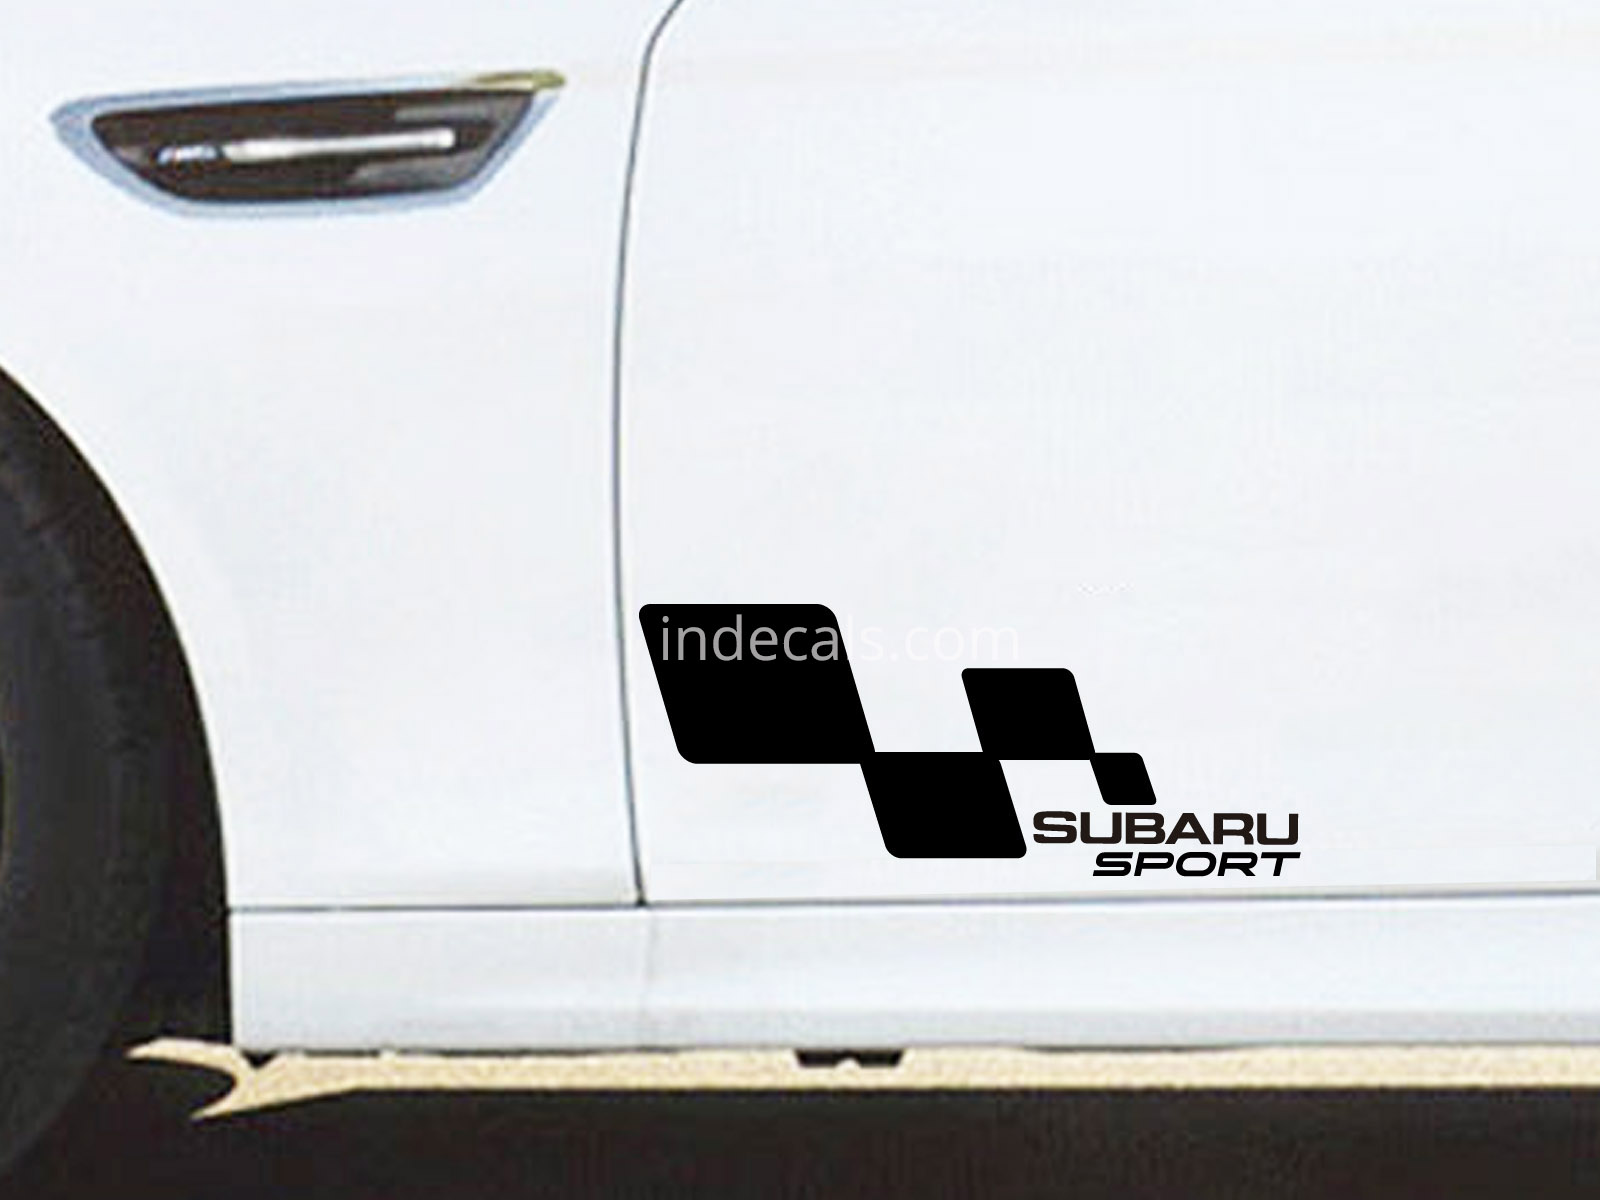 2 x Subaru Racing Flag Stickers - Black